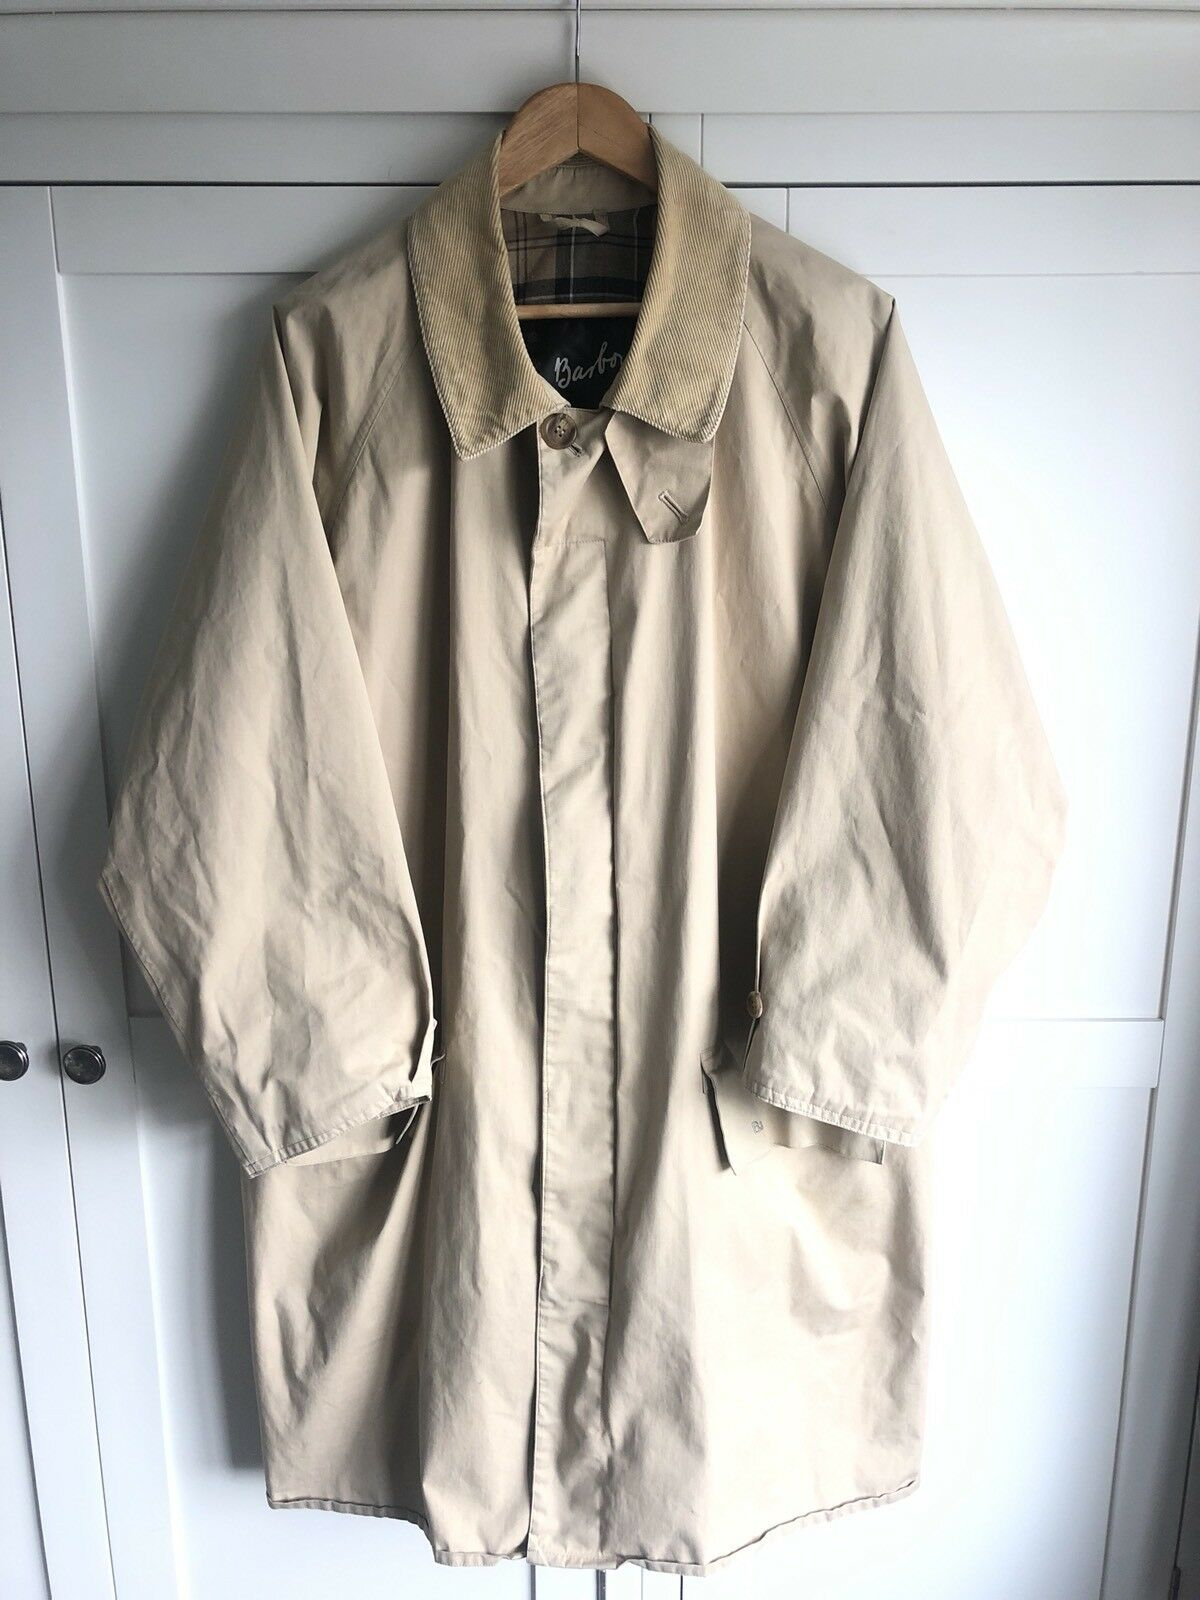 Barbour 3/4 Length Trench Coat XL - Amazing Piece